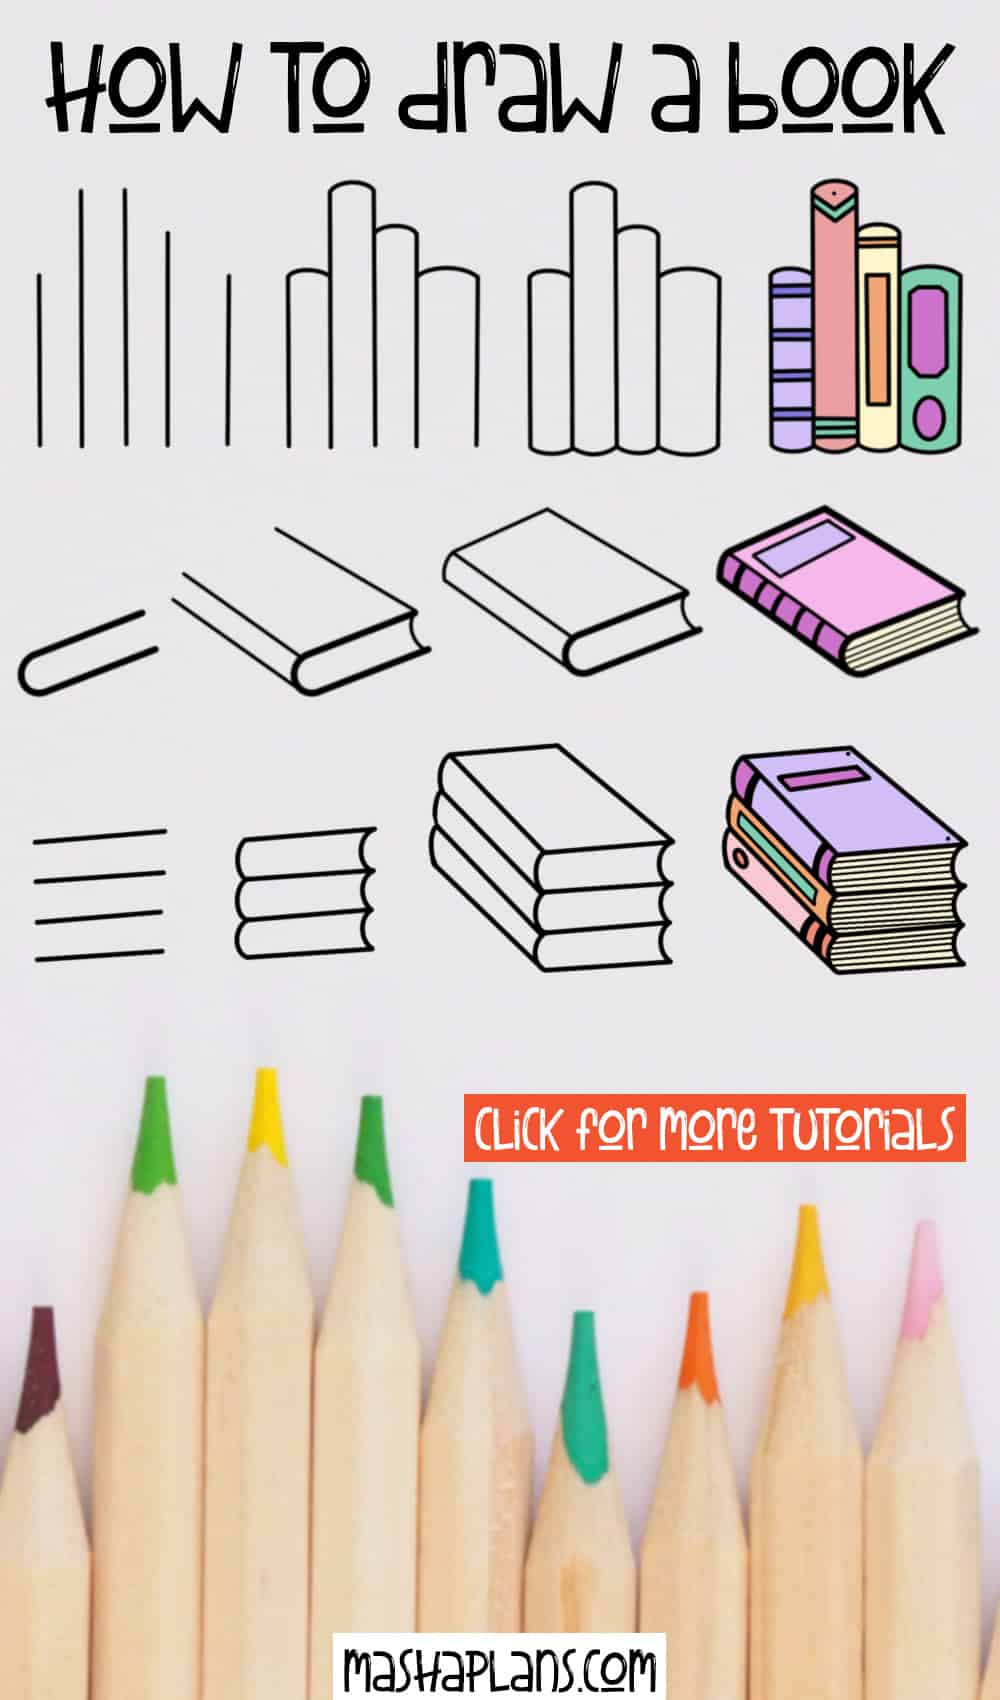 How To Draw A Book: 7 Easy Step By Step Tutorials | Masha Plans